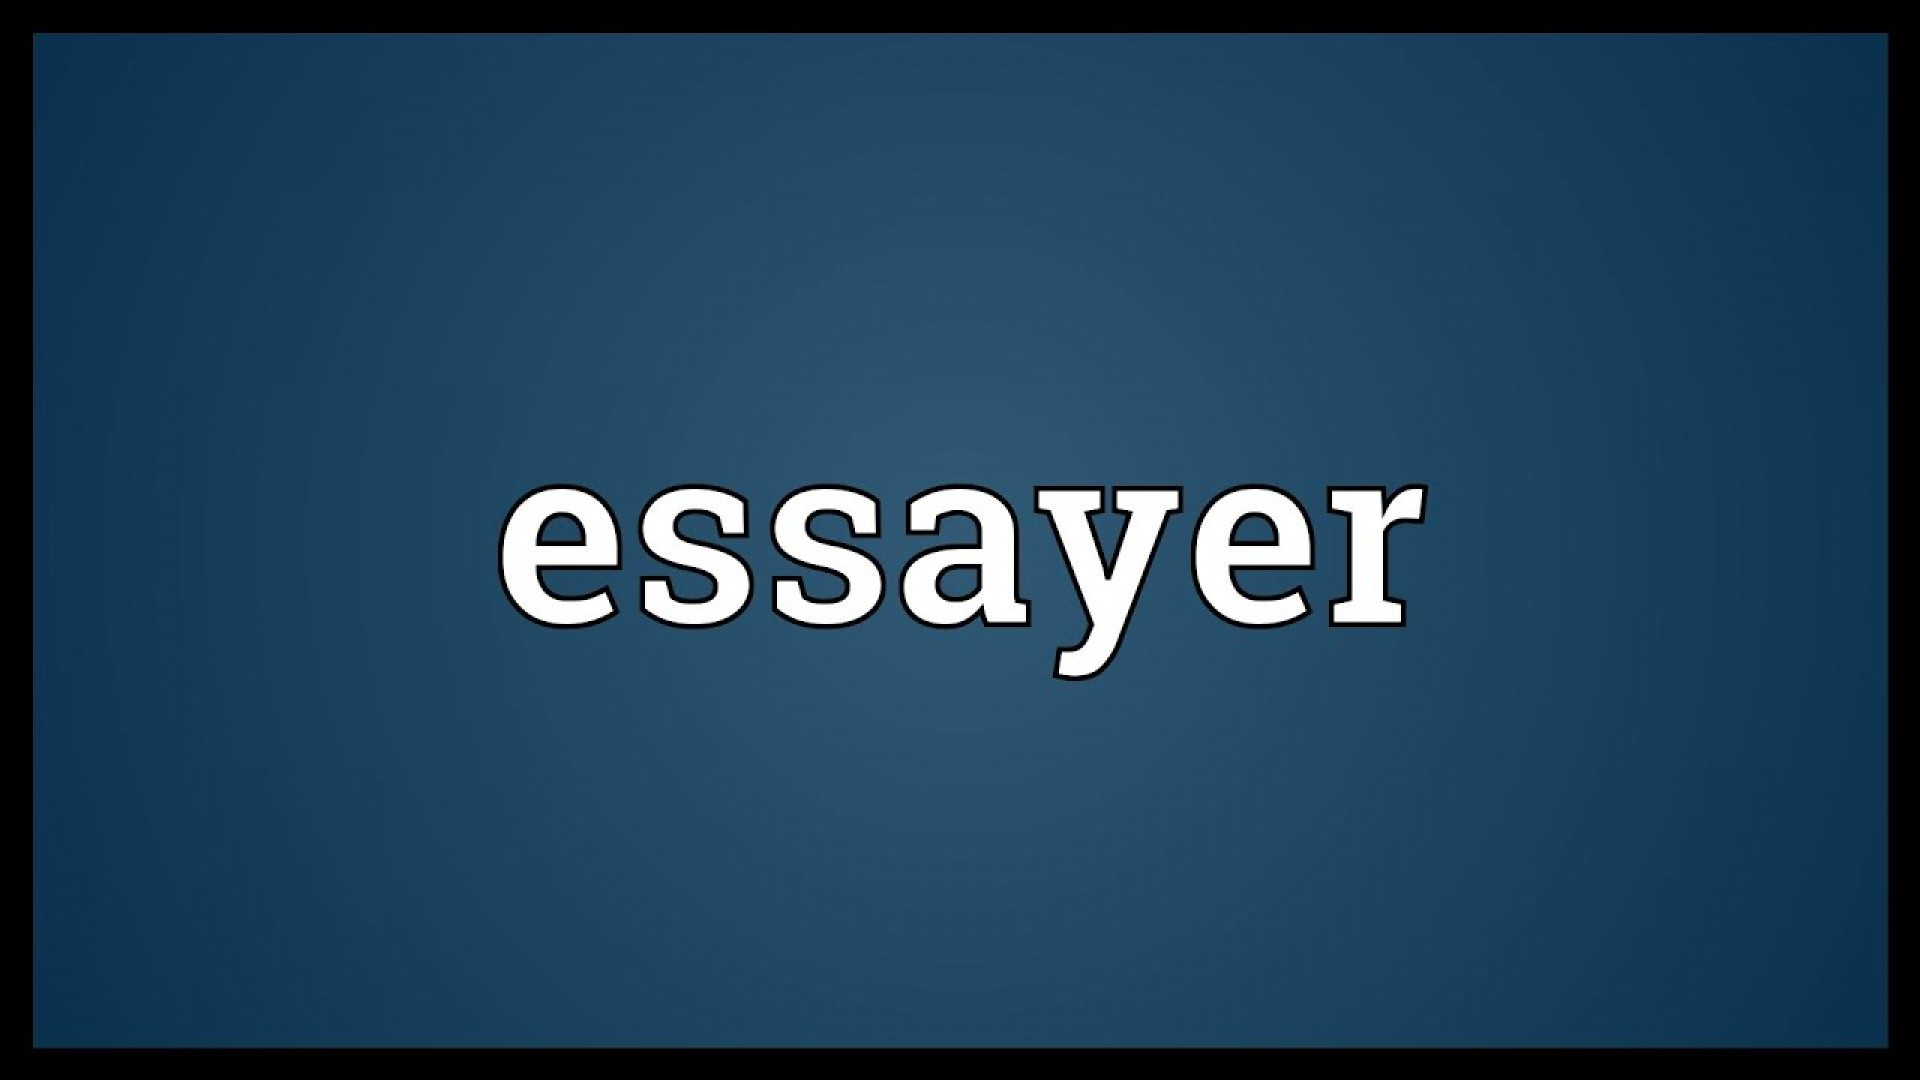 014 Essayer Maxresdefault Essay Impressive Conjugation French Passe Compose Definition Larousse In English 1920